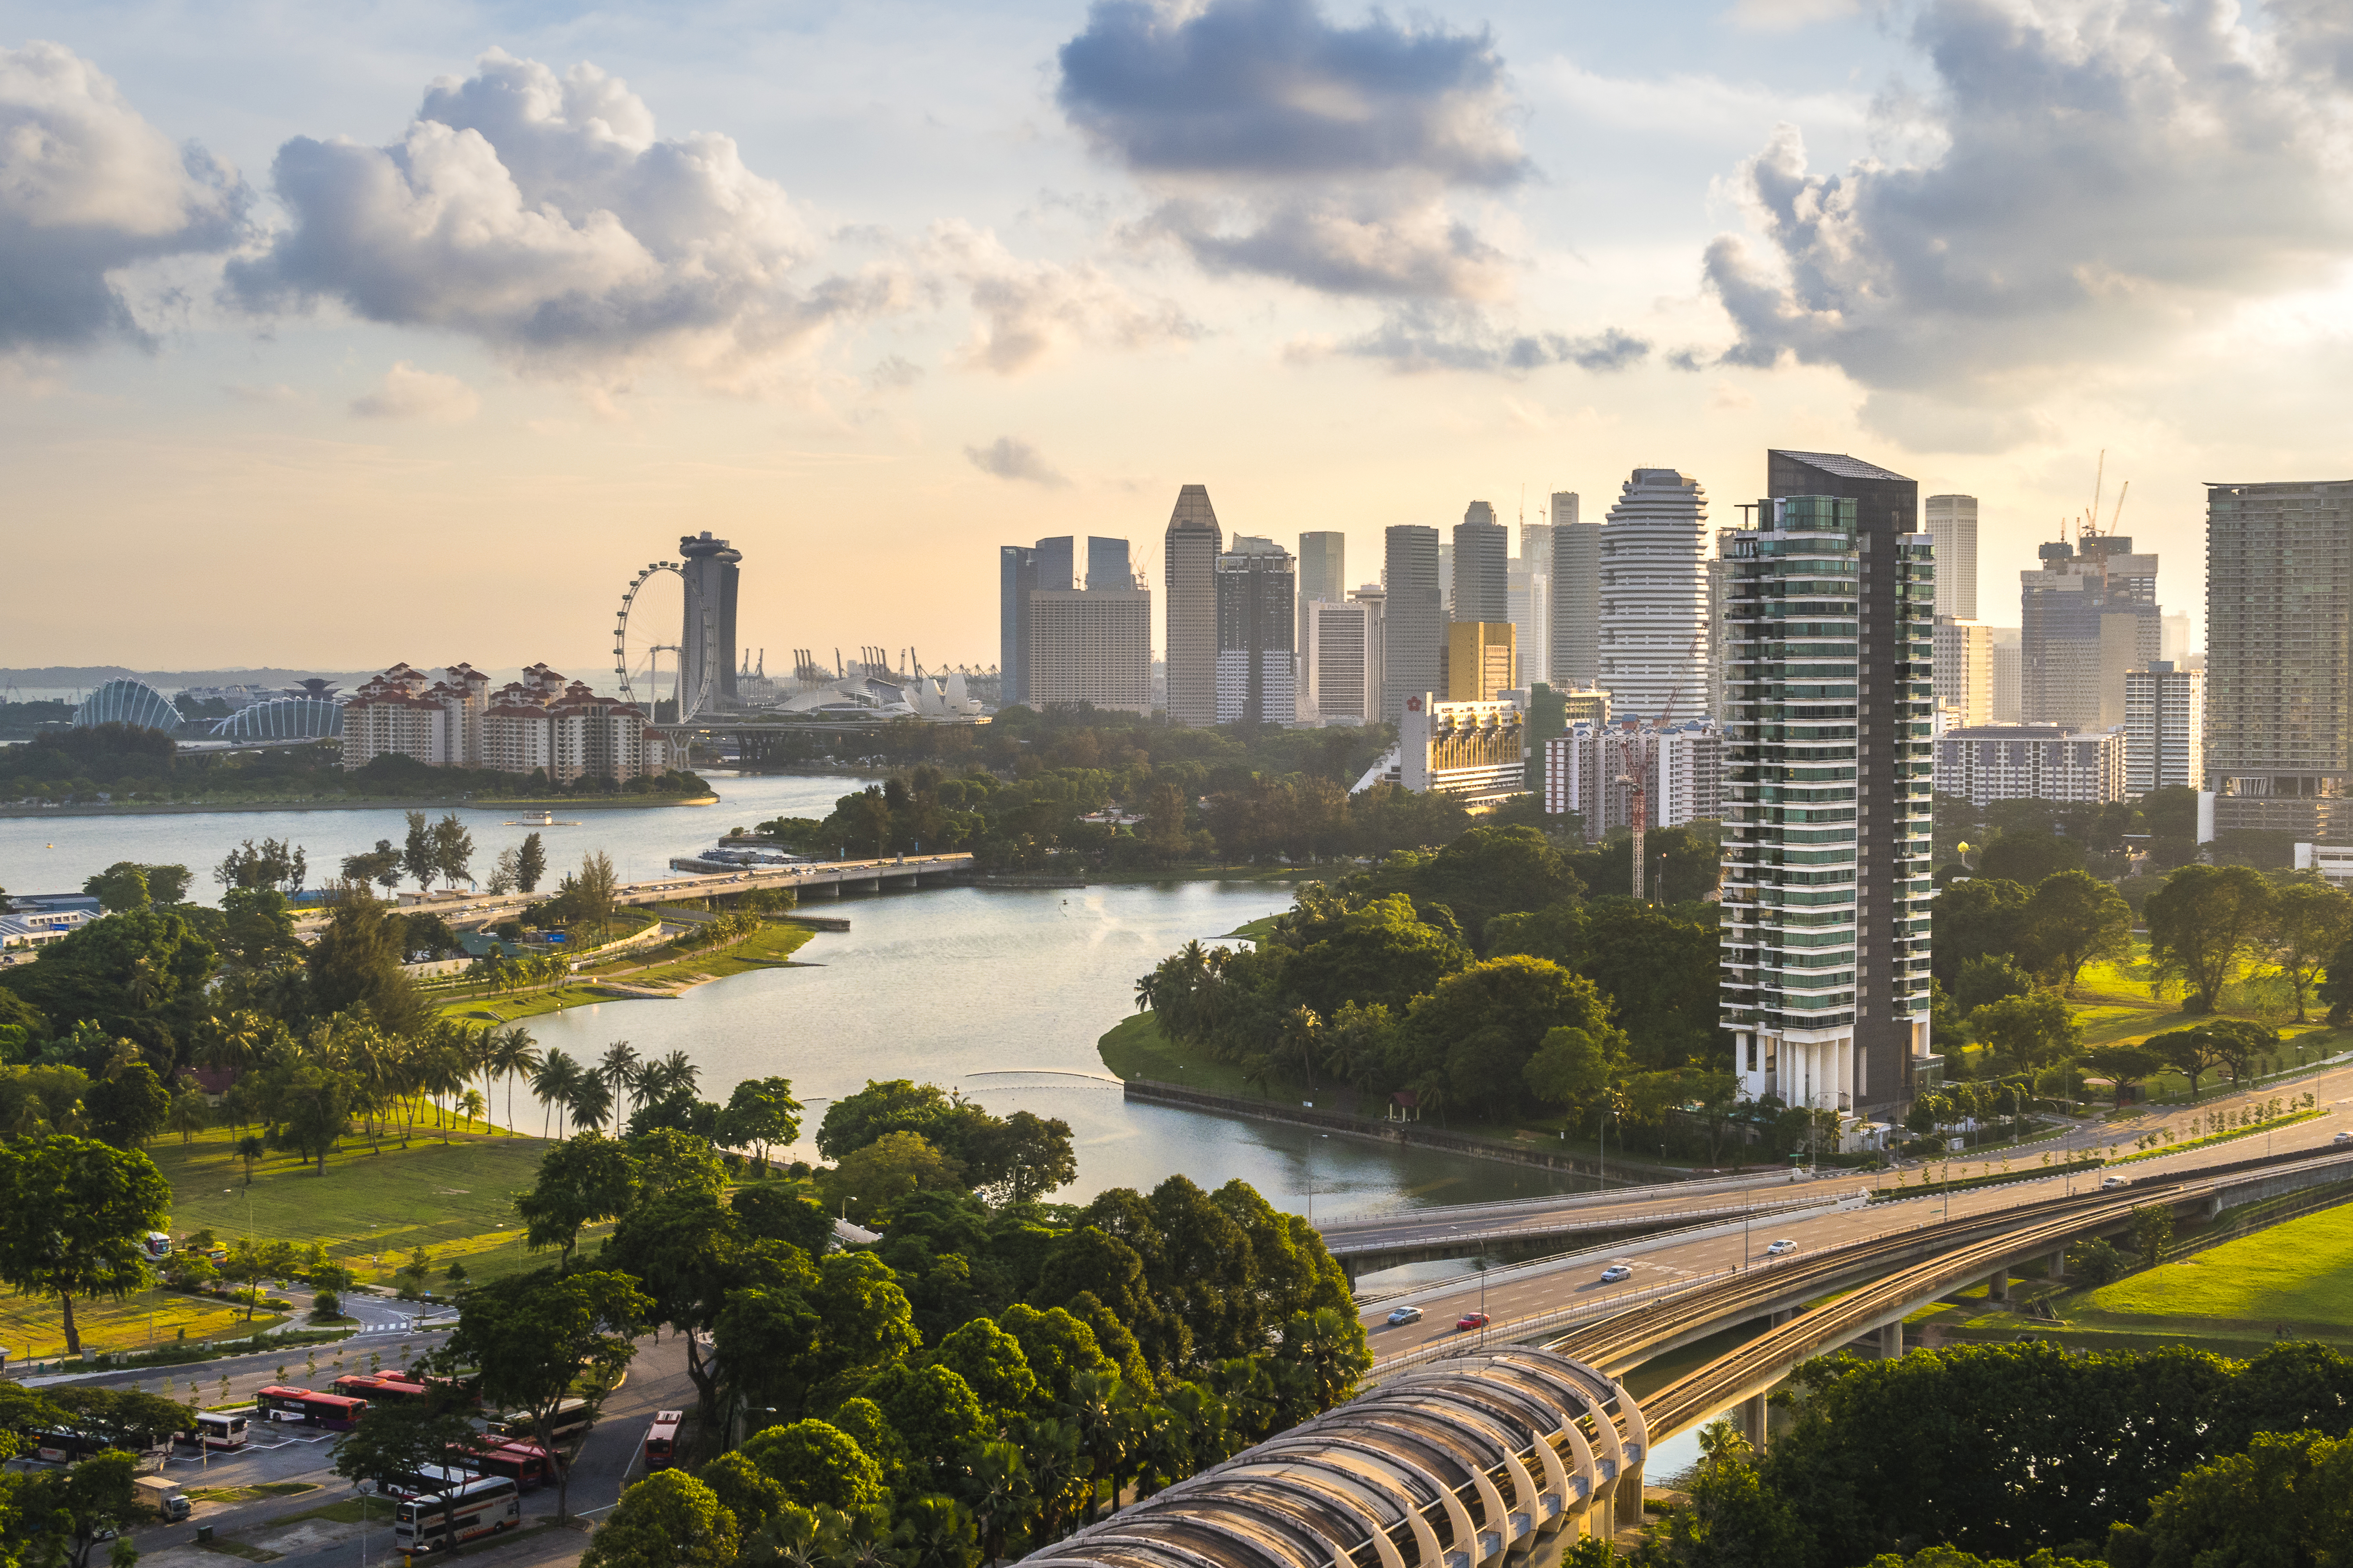 An aerial view of Singapore. There is a highway, trees, and many city buildings.